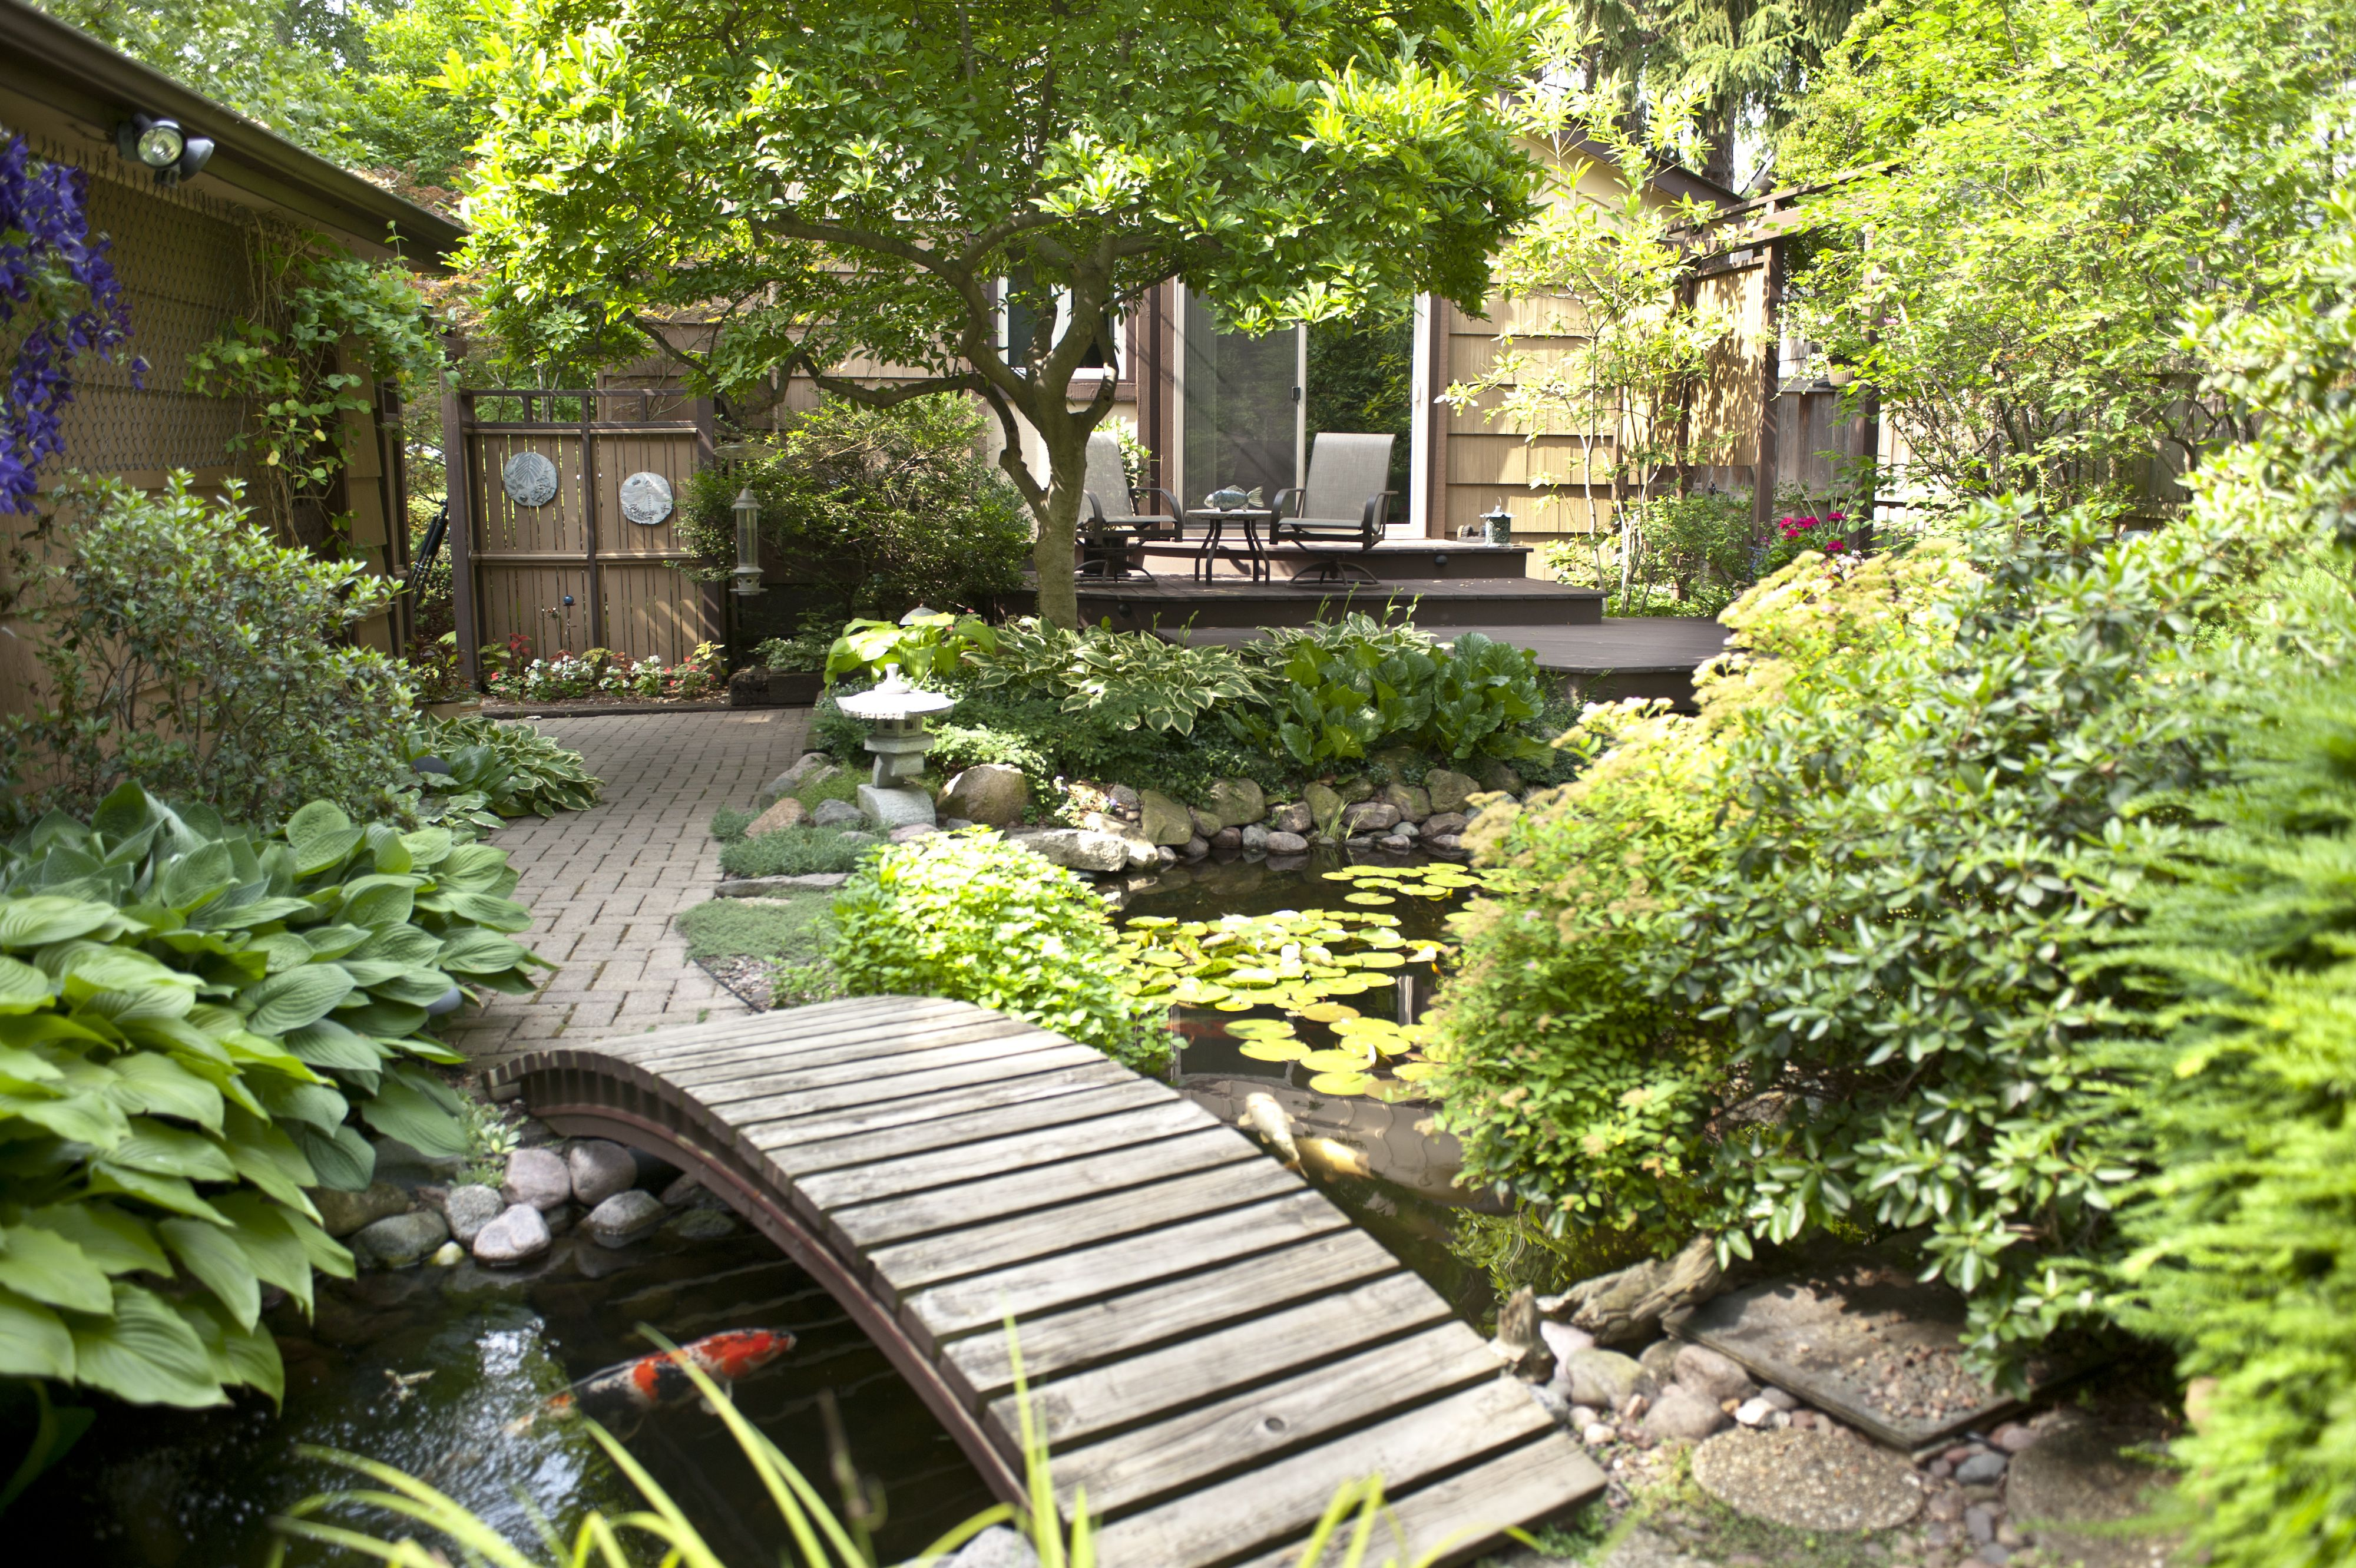 koi pond in downers grove il creates unique outdoor living space